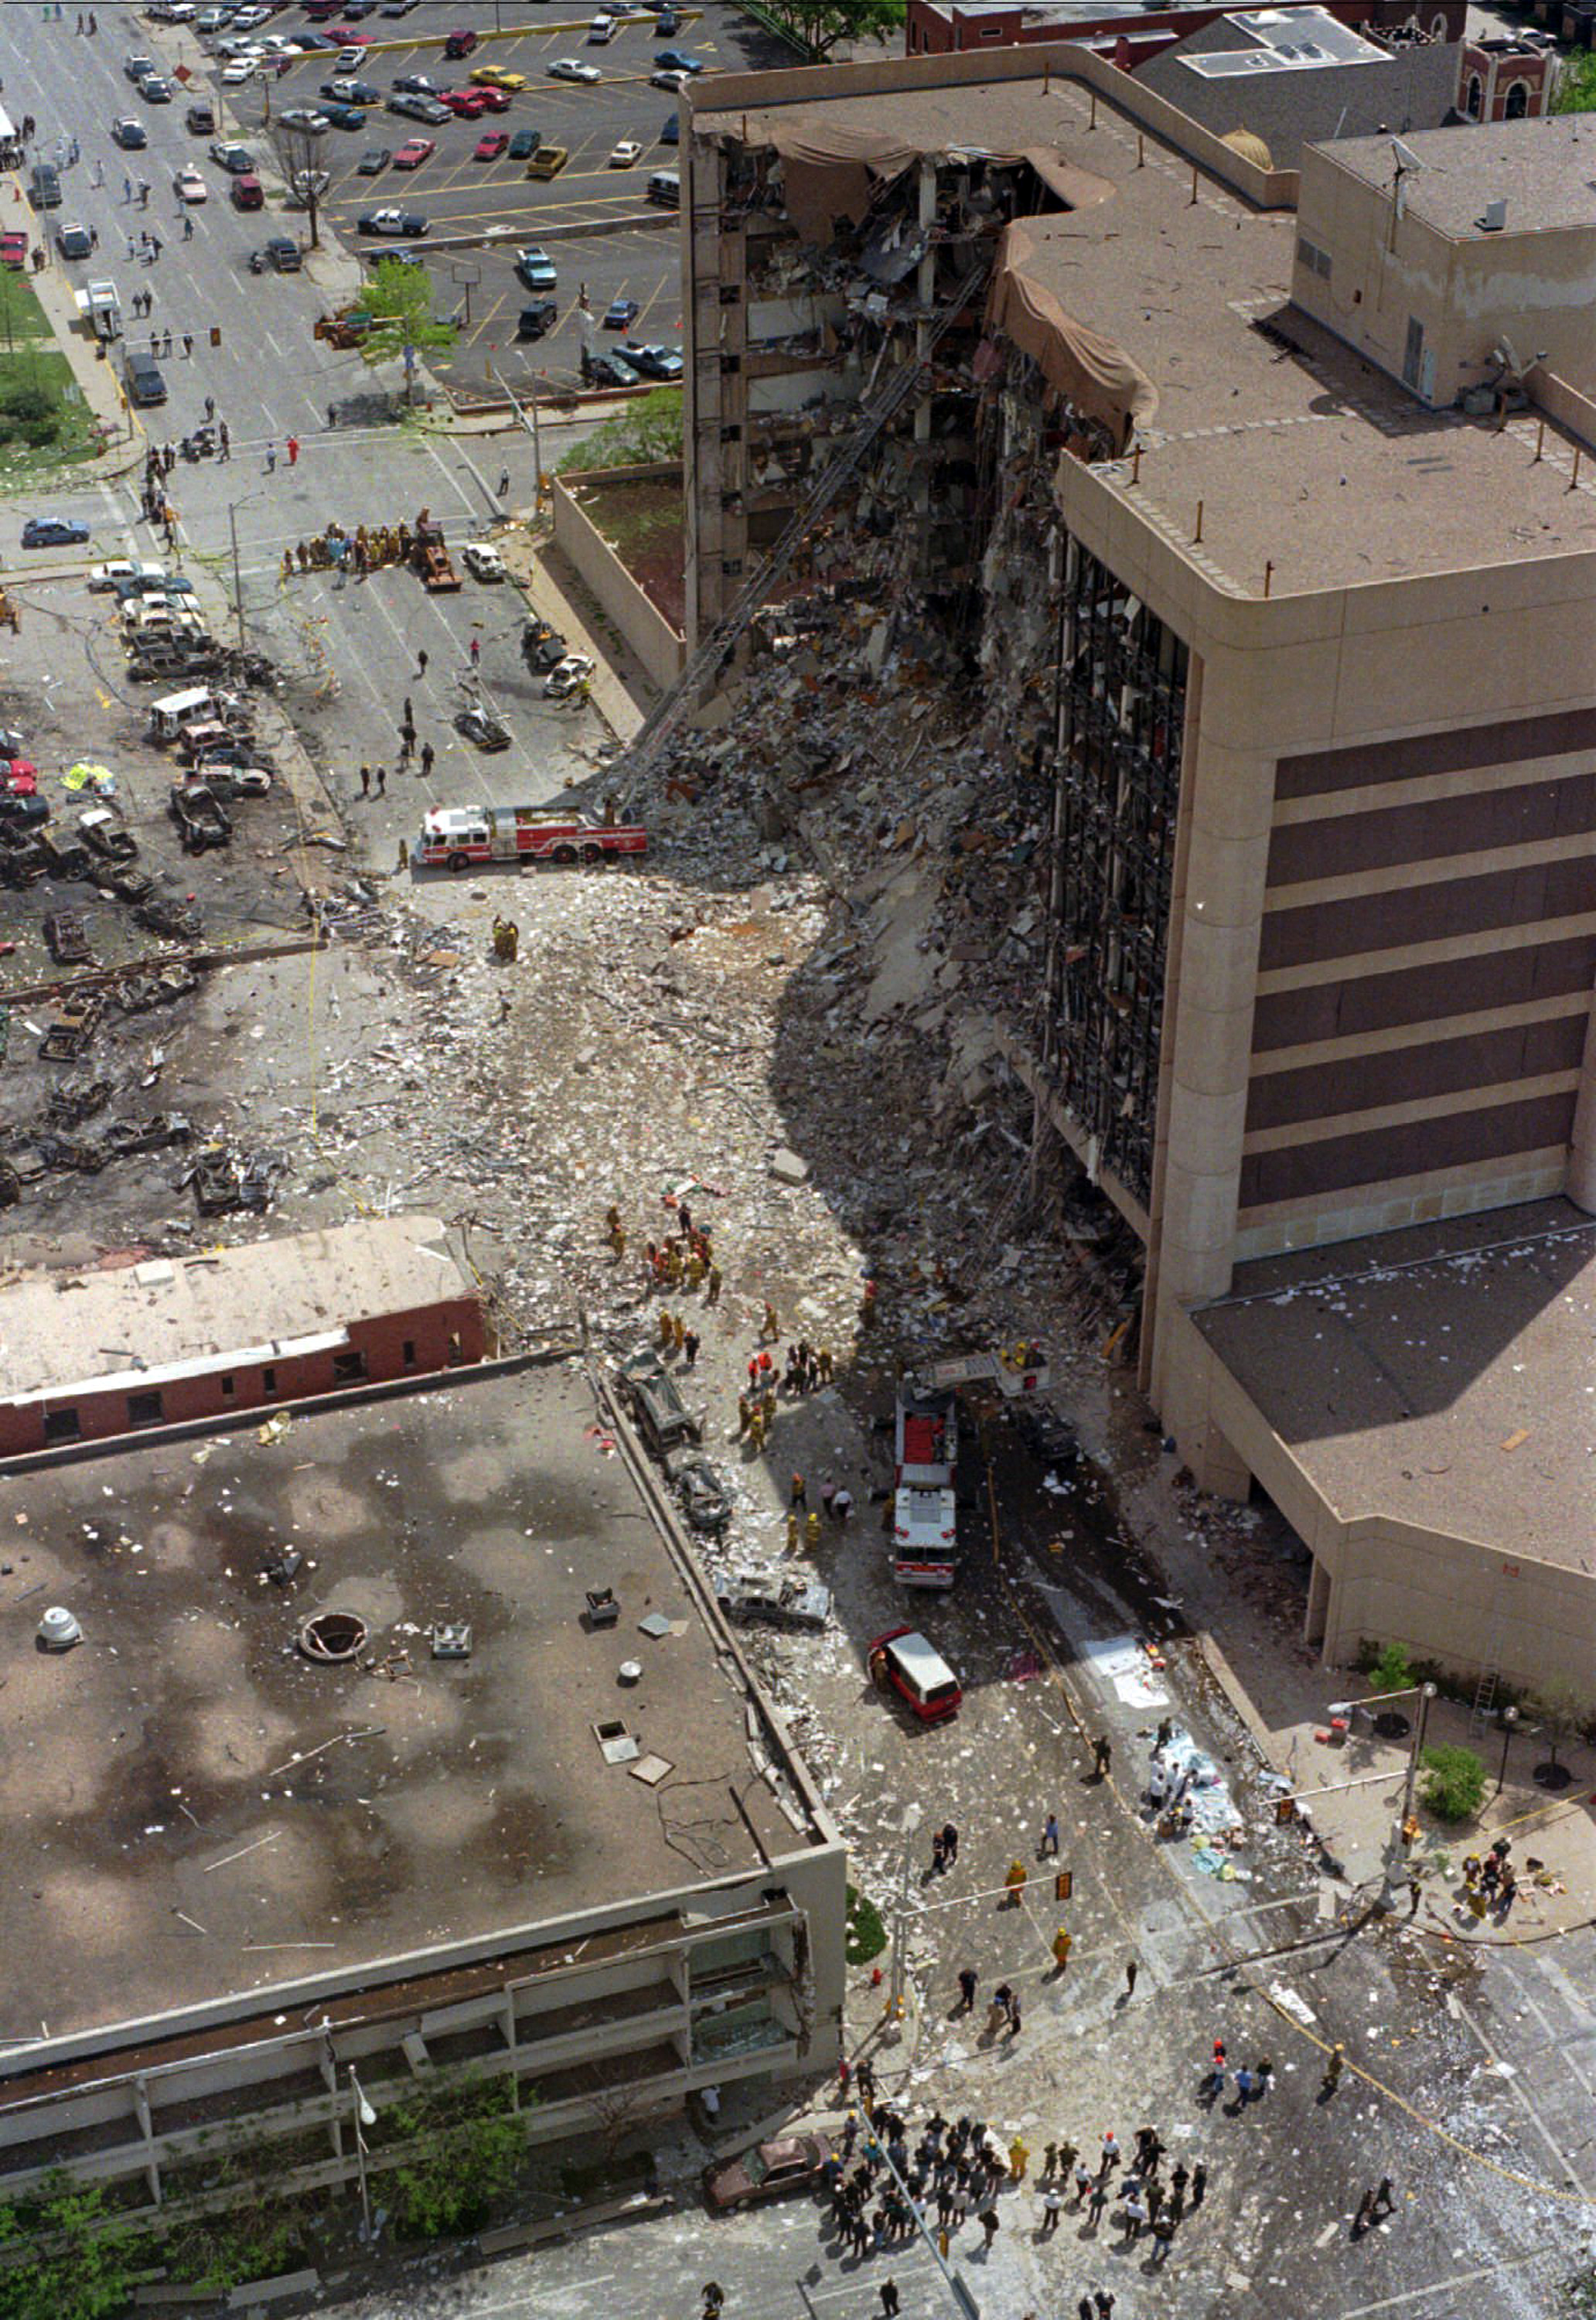 oklahoma bombing city essay Winning essays came from students in nevada and oklahoma essay building and lost 18 of its 33 employees in the bombing 2018 oklahoma city national.